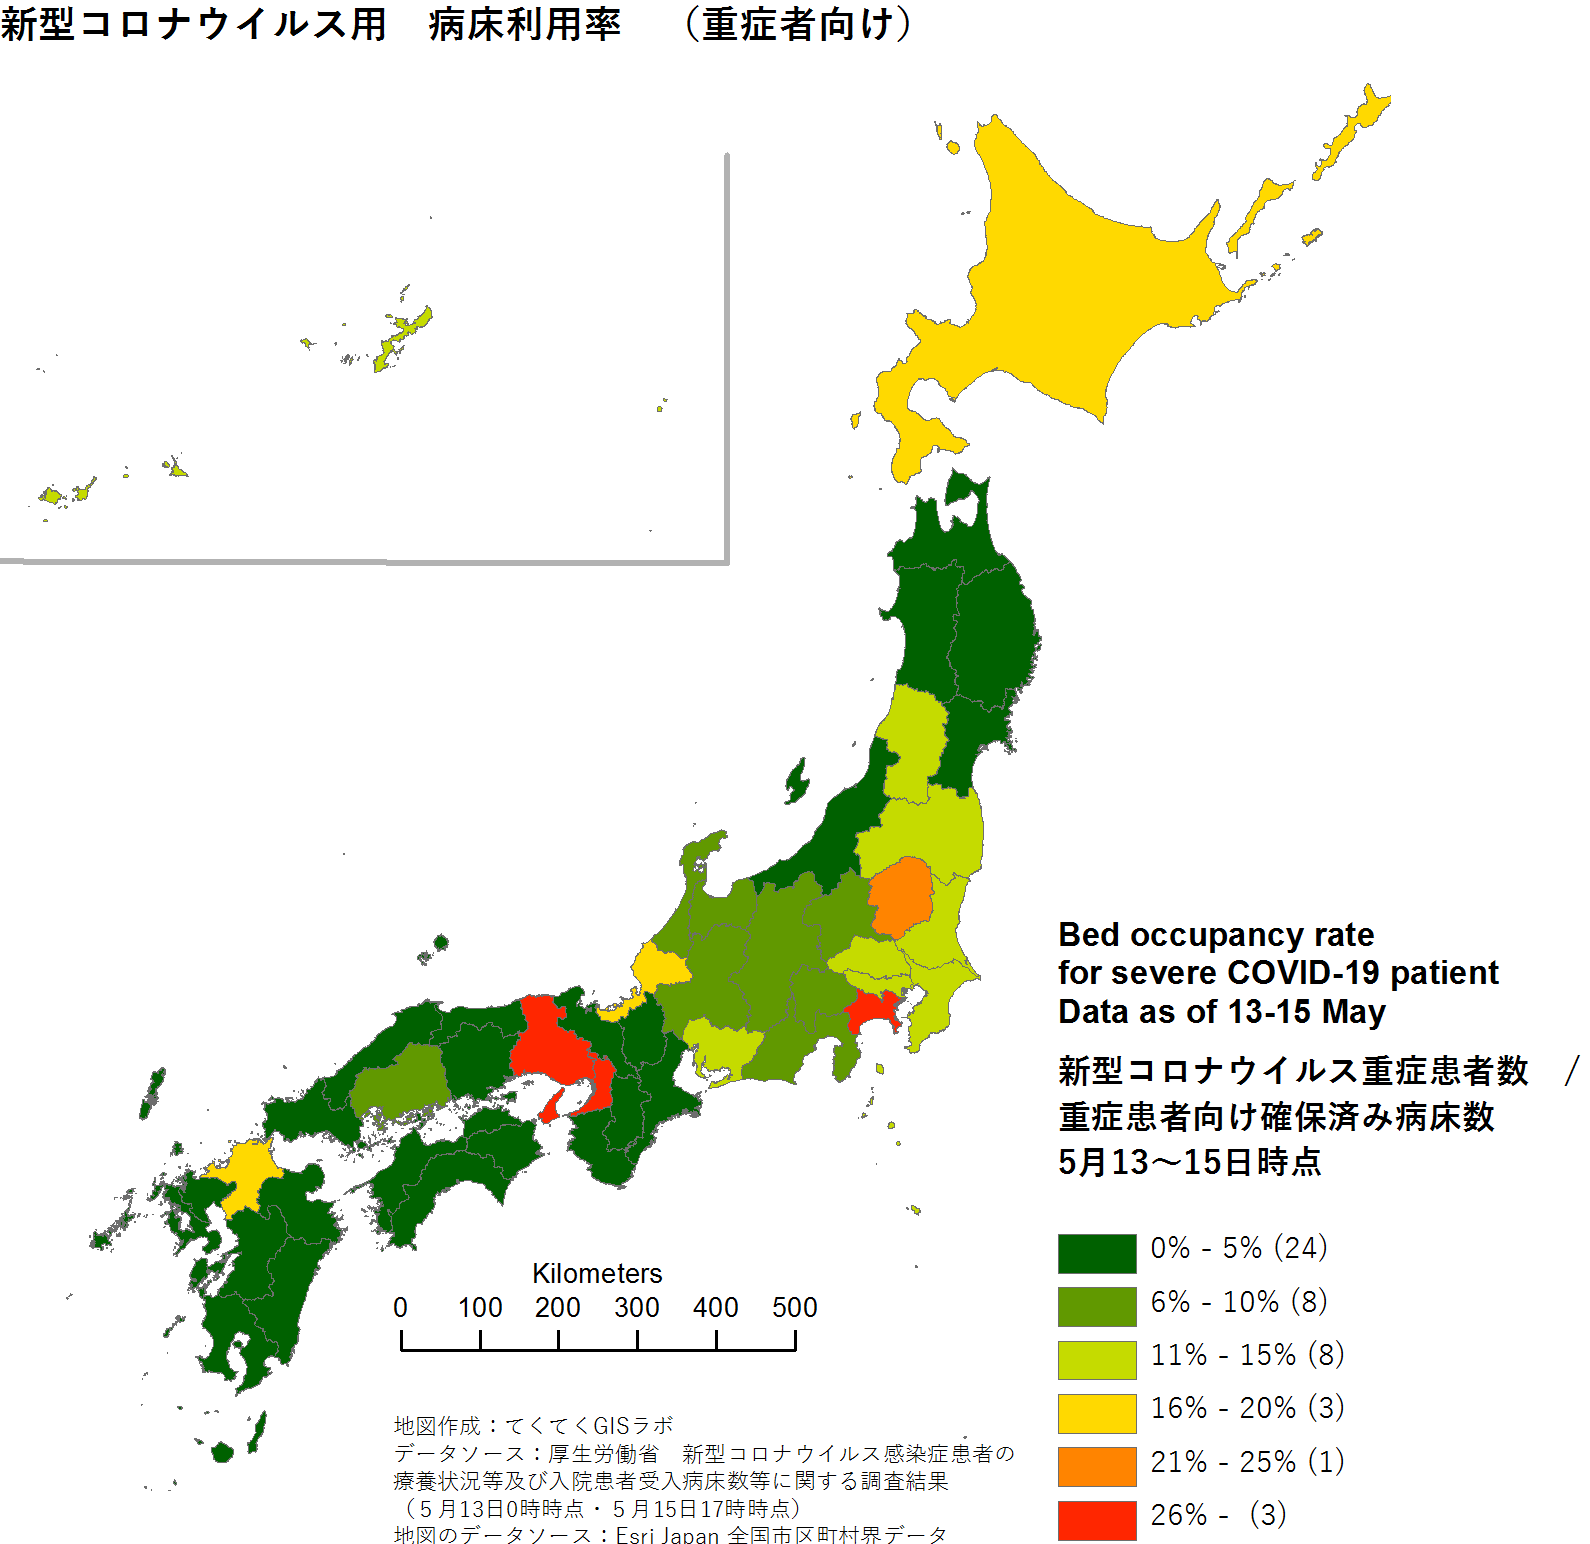 bed occupancy rate in Japan